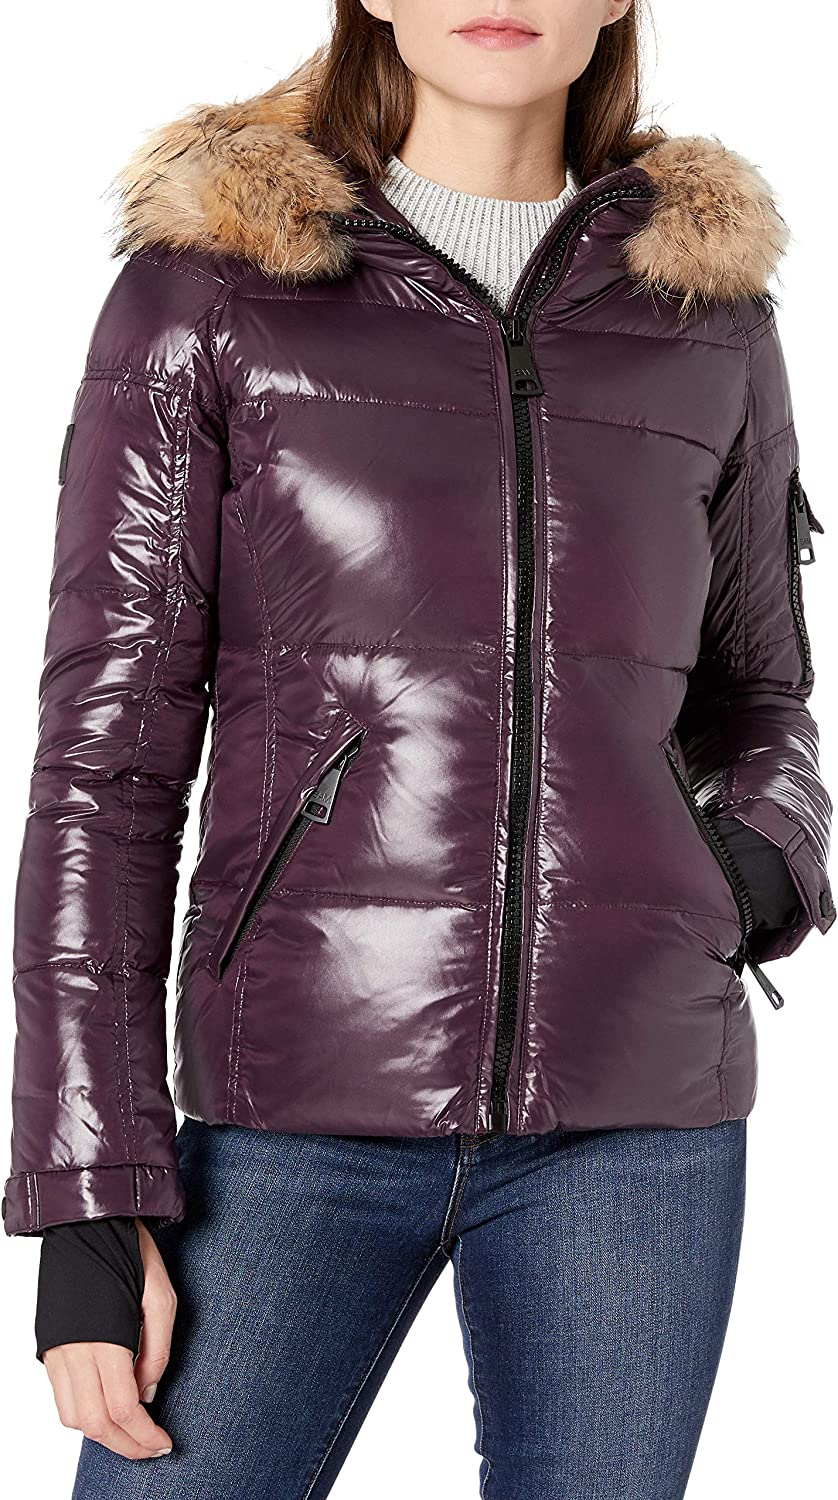 SAM. Women's Blake Shaped Down Puffer Jacket with Real Fur Hood